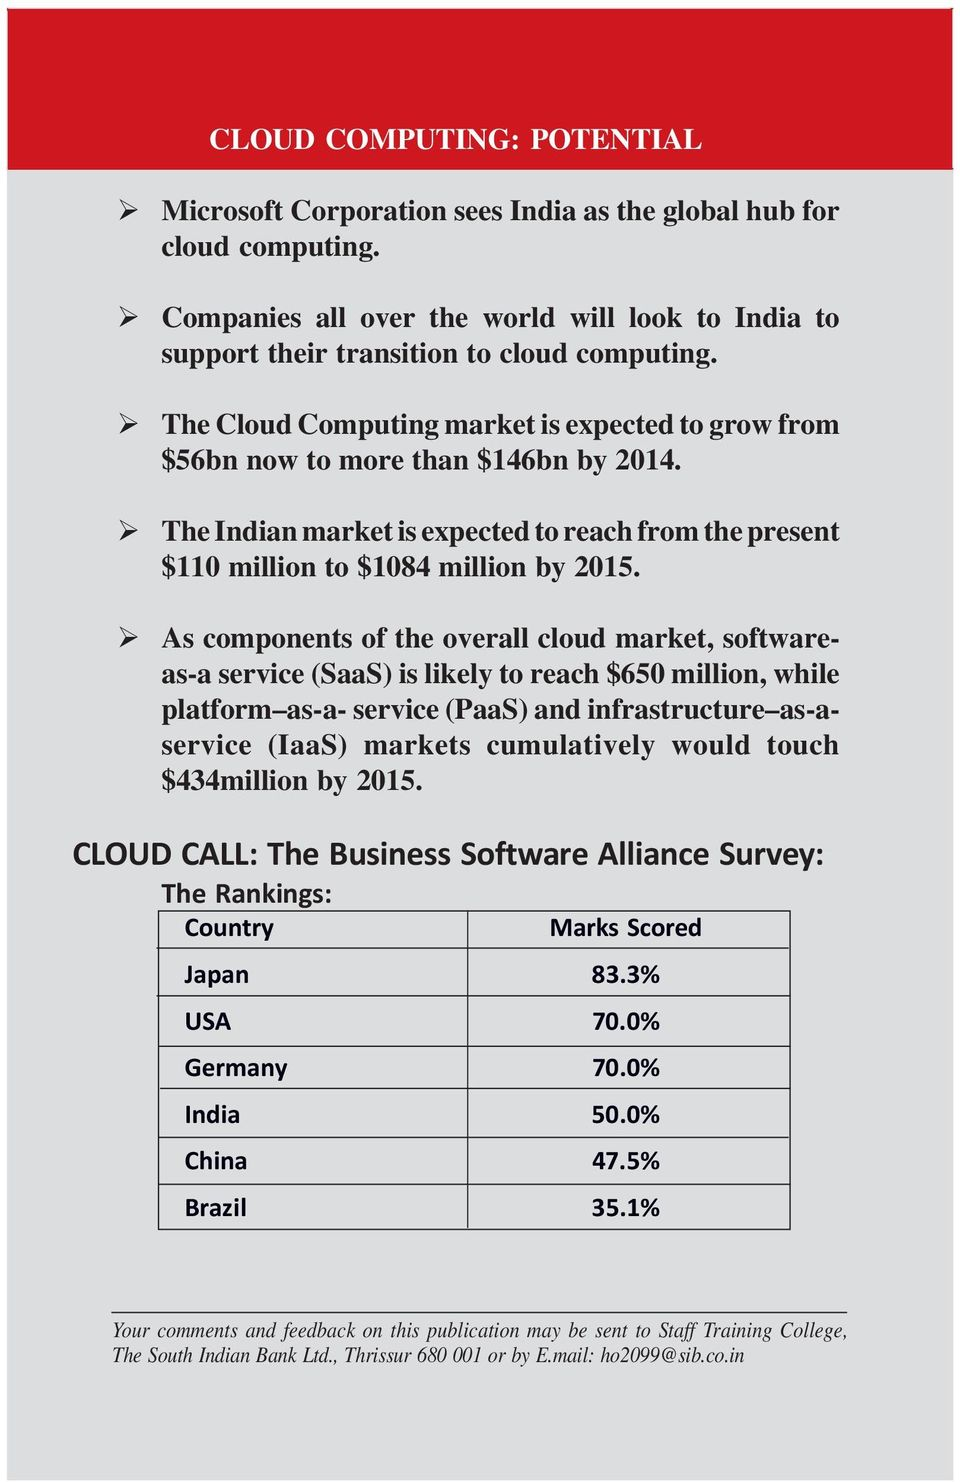 As components of the overall cloud market, softwareas-a service (SaaS) is likely to reach $650 million, while platform as-a- service (PaaS) and infrastructure as-aservice (IaaS) markets cumulatively